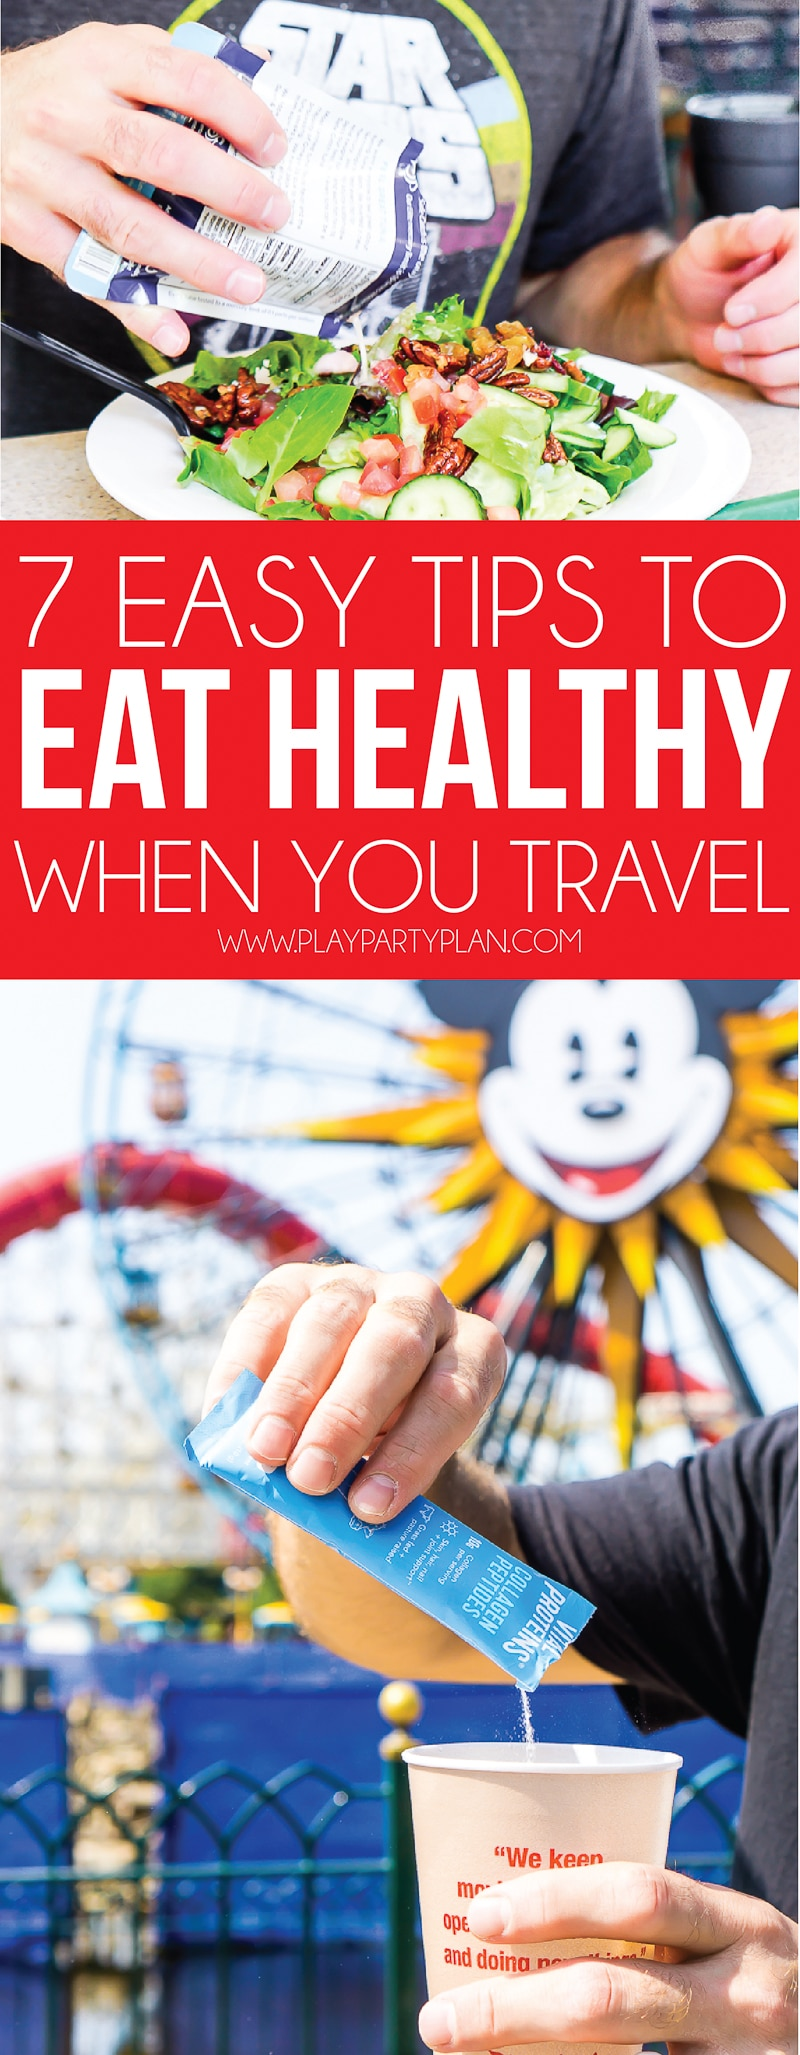 Tips for eating healthy while you travel! Great healthy snacks, tips for healthy travel, and even great ideas for getting more sleep!